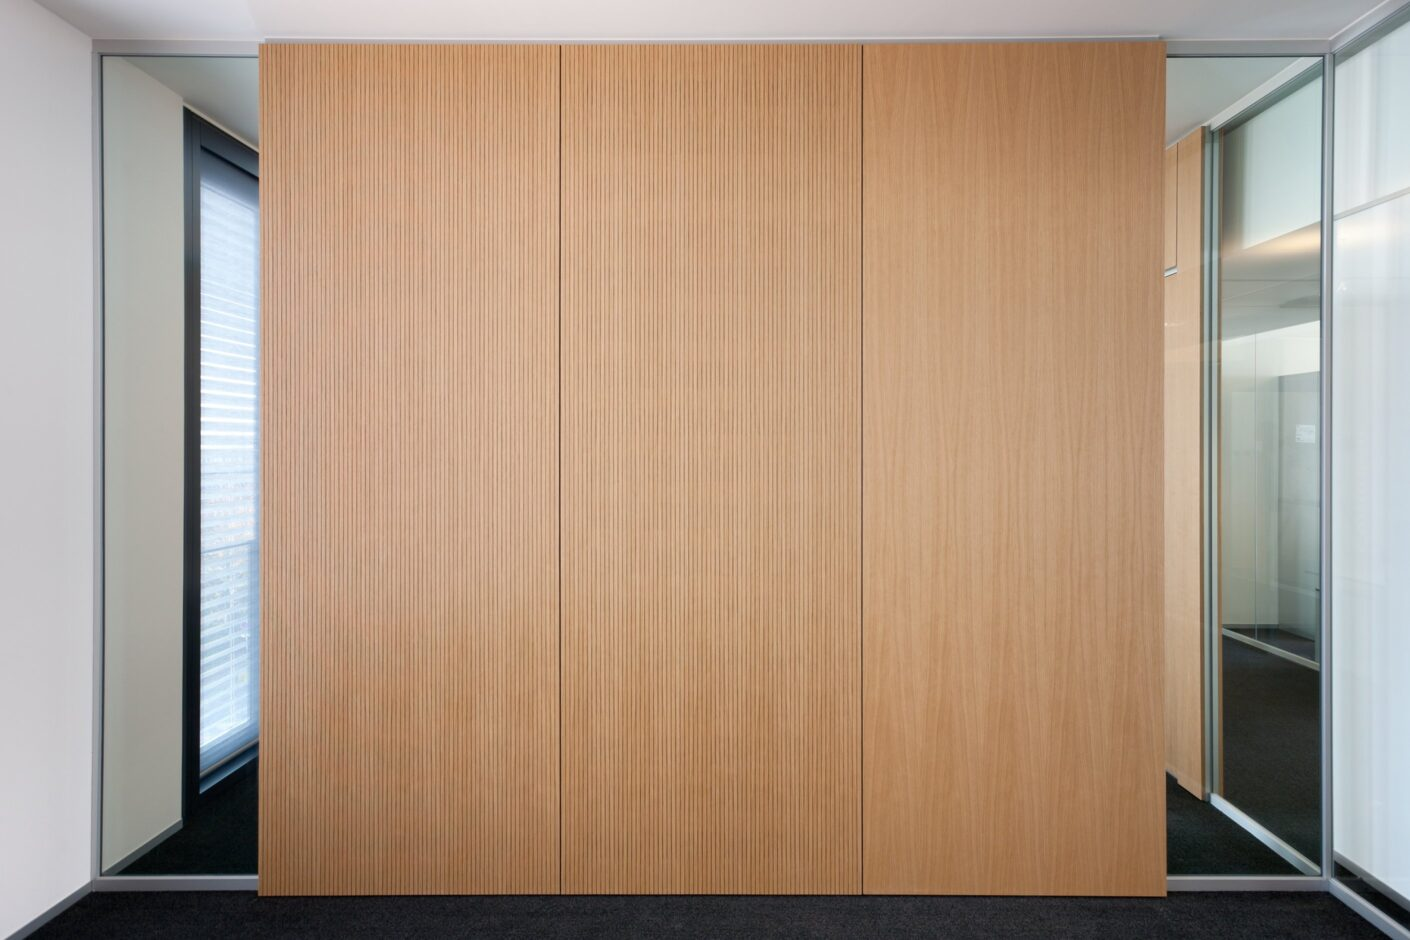 fecowand│feco partition walls│R+V Wiesbaden